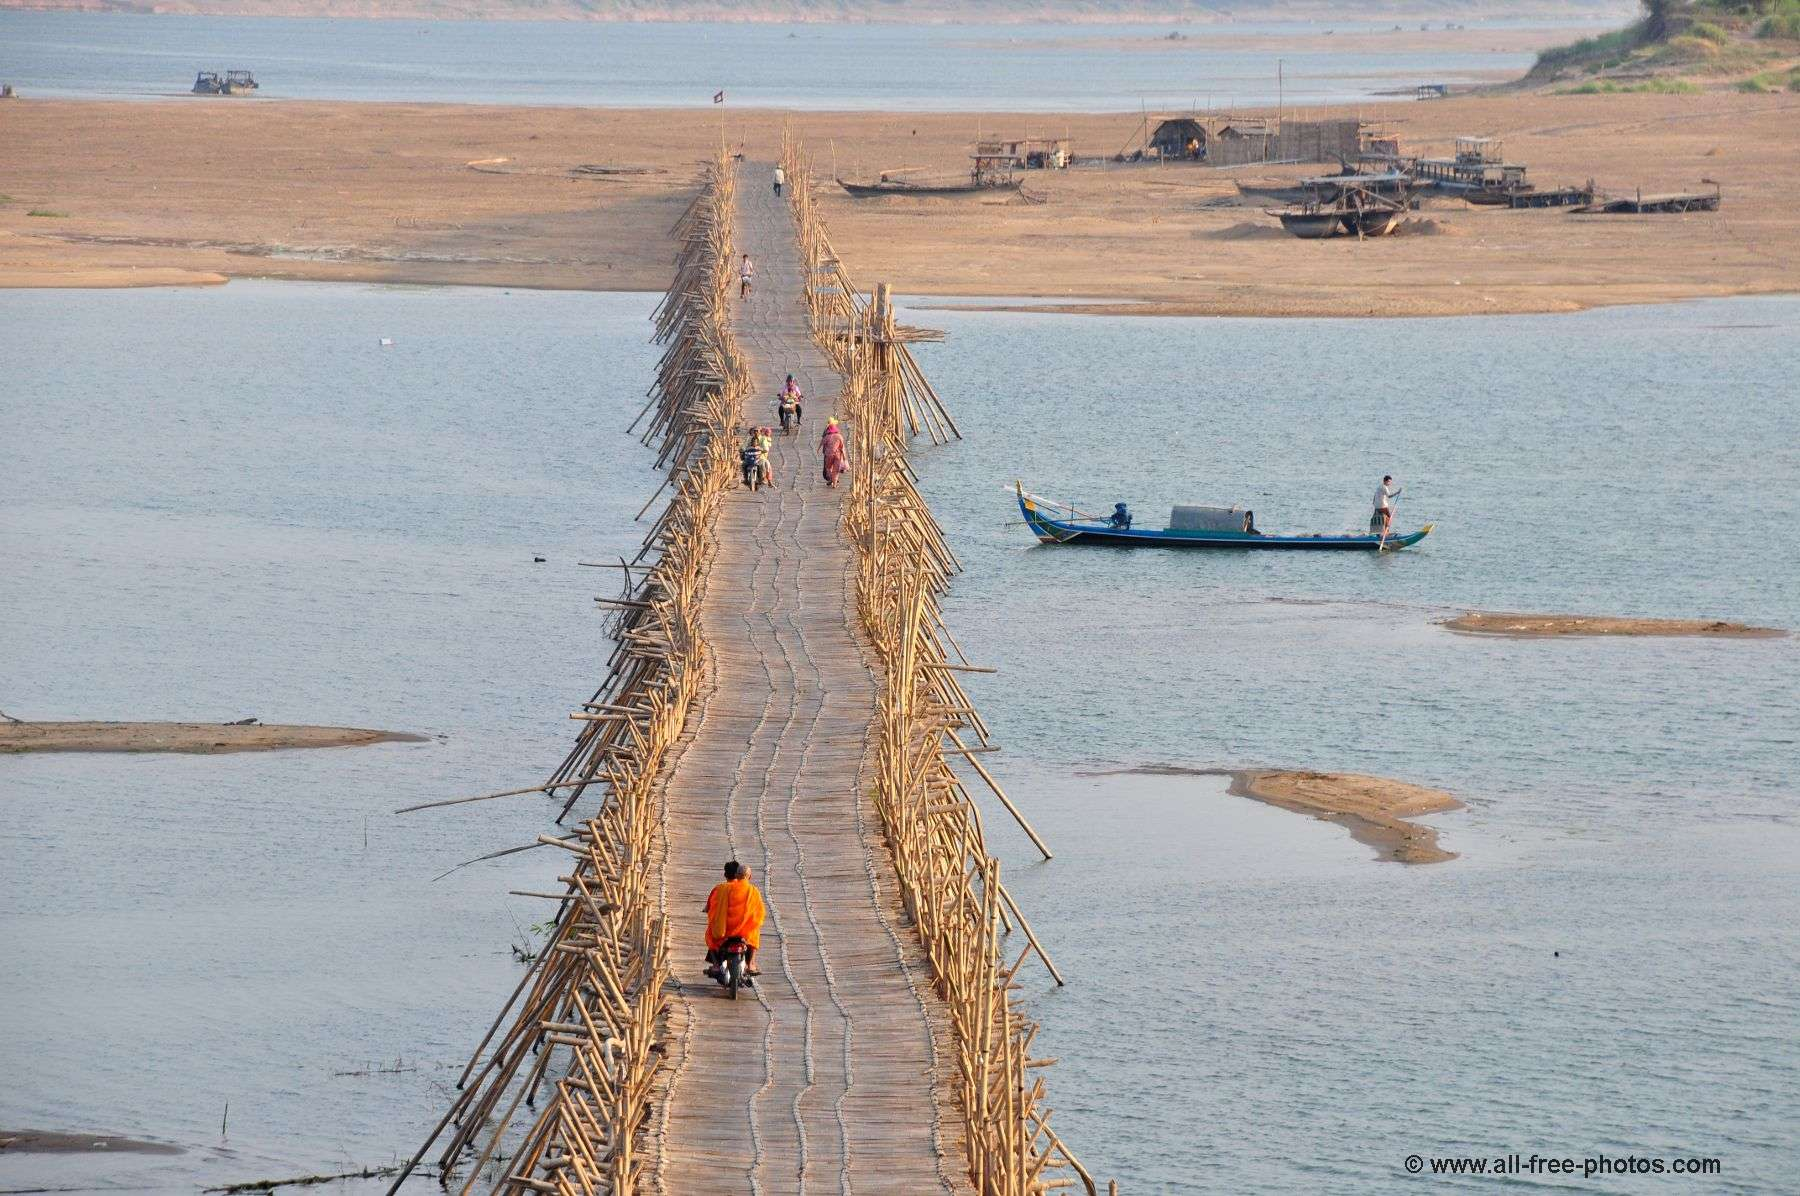 Bridge of bamboo - Kampong Cham - Cambodia